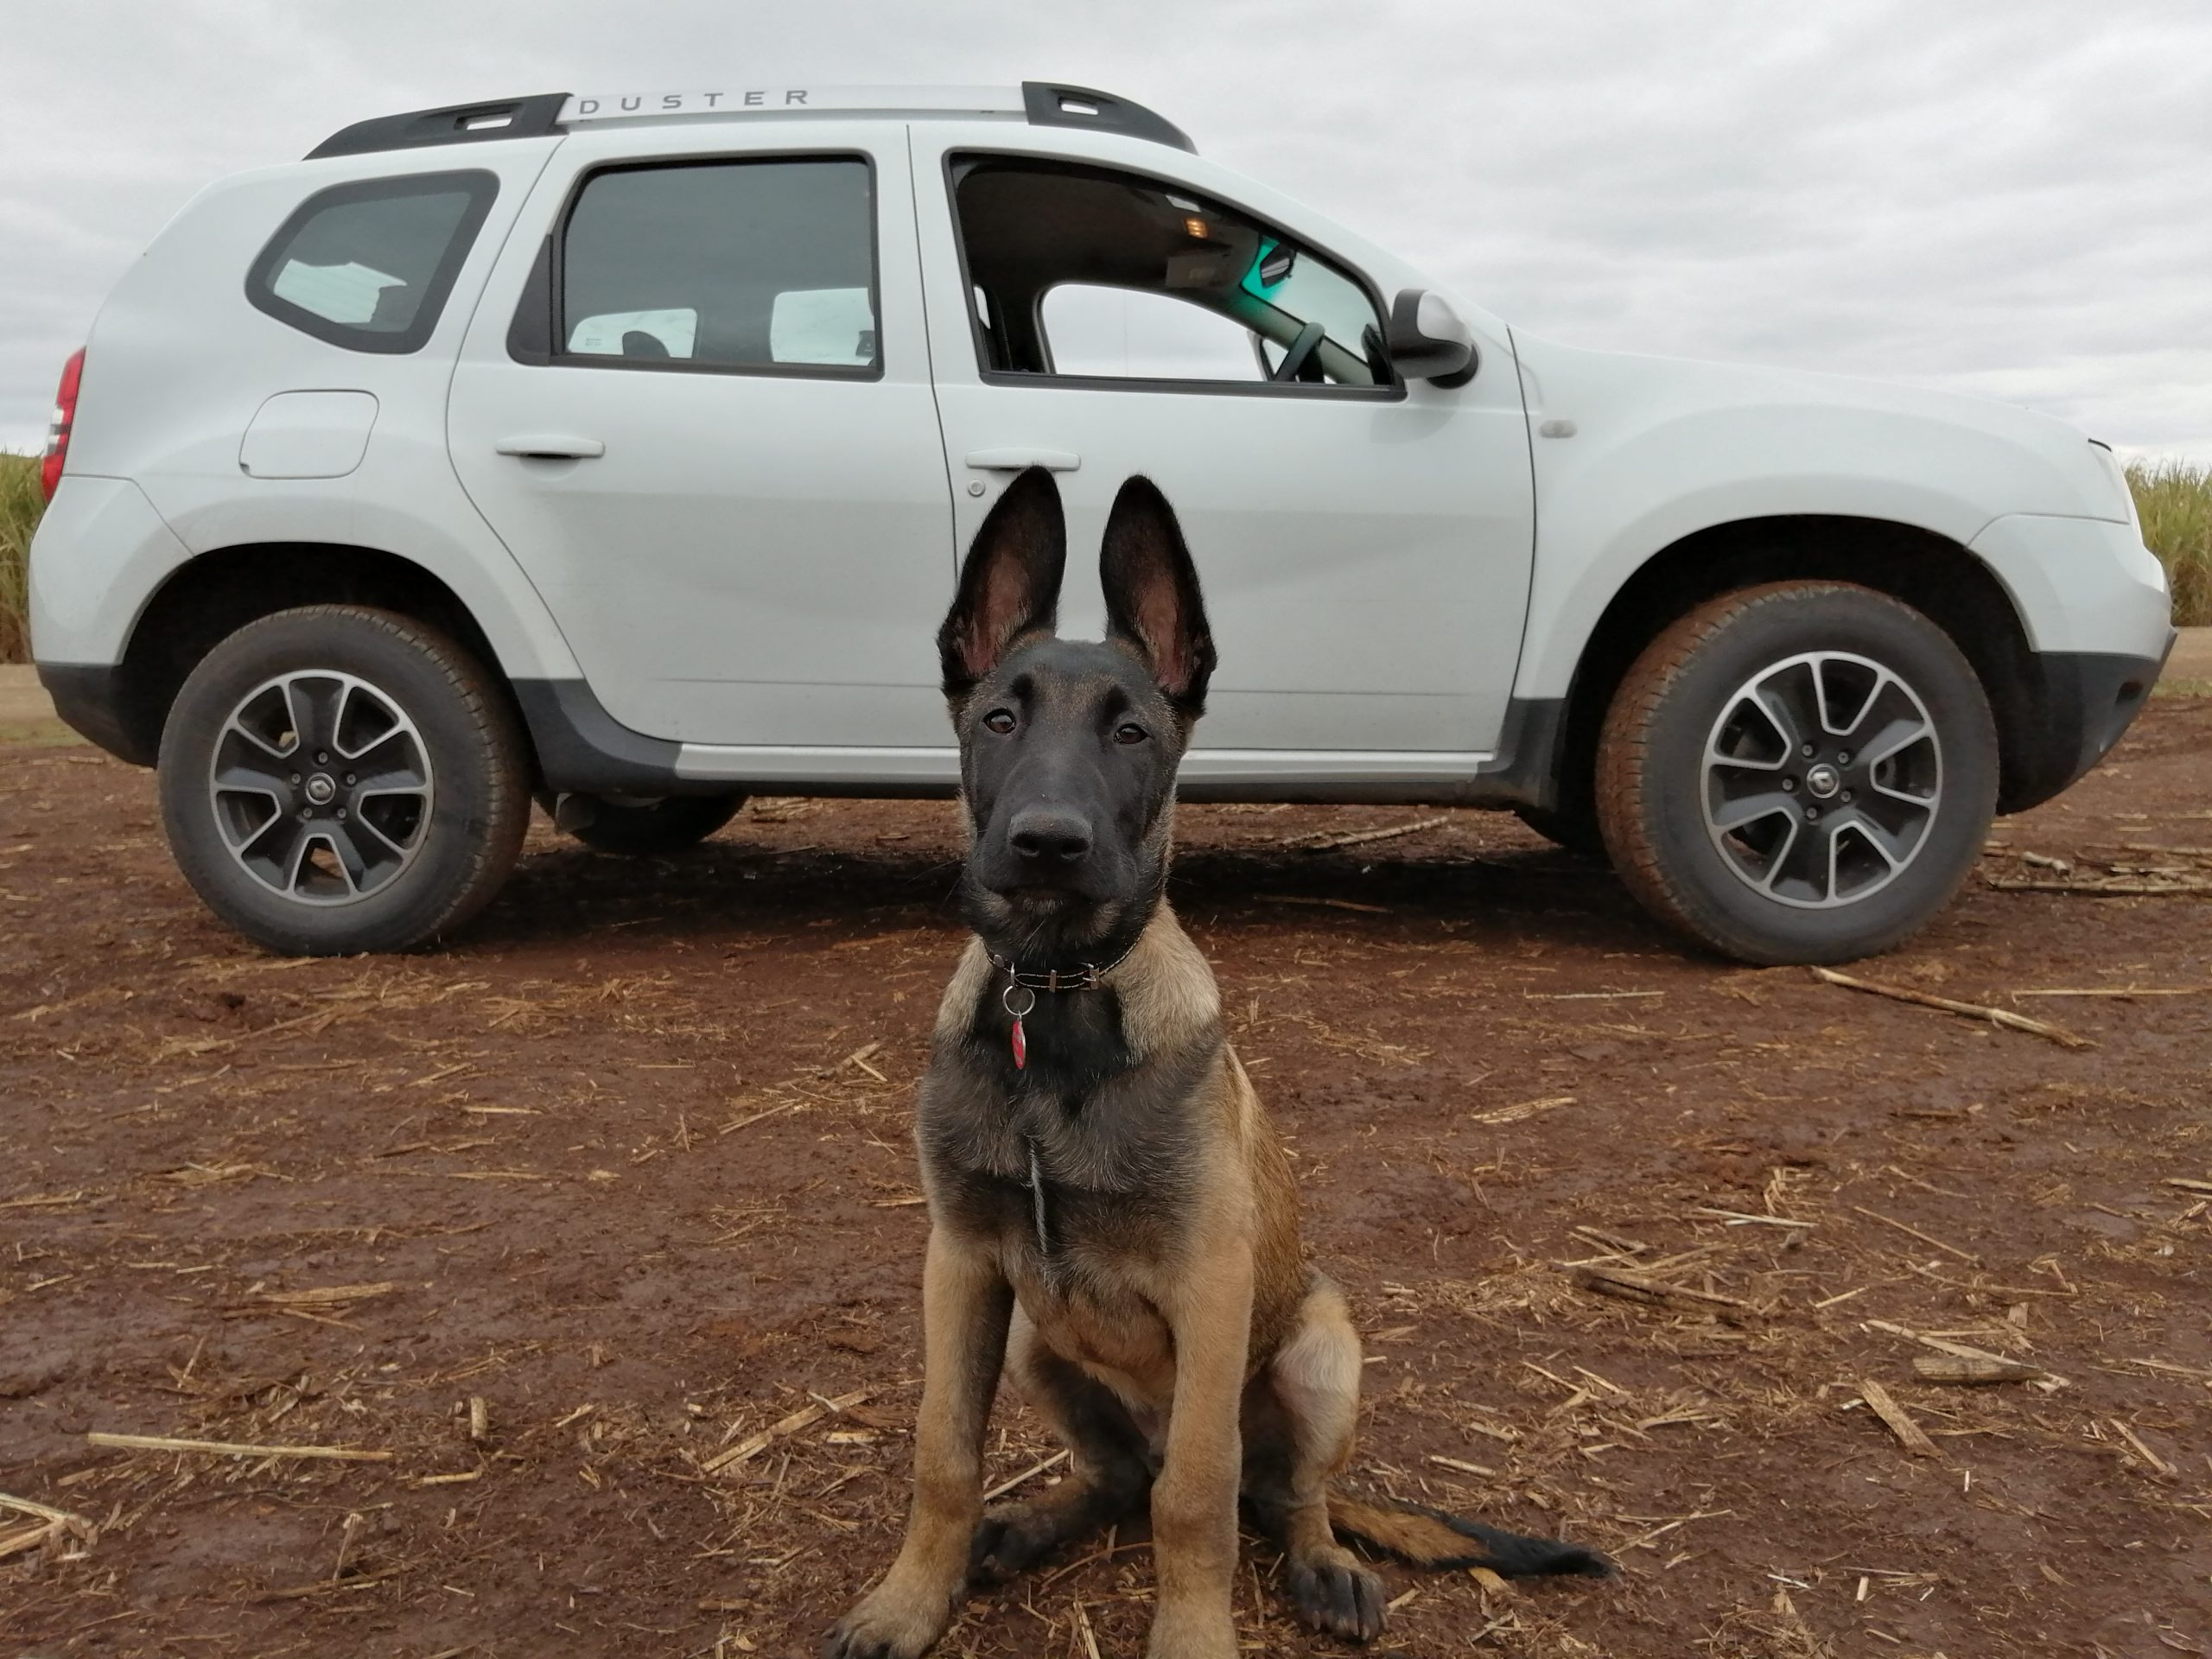 K9 waiting obediently